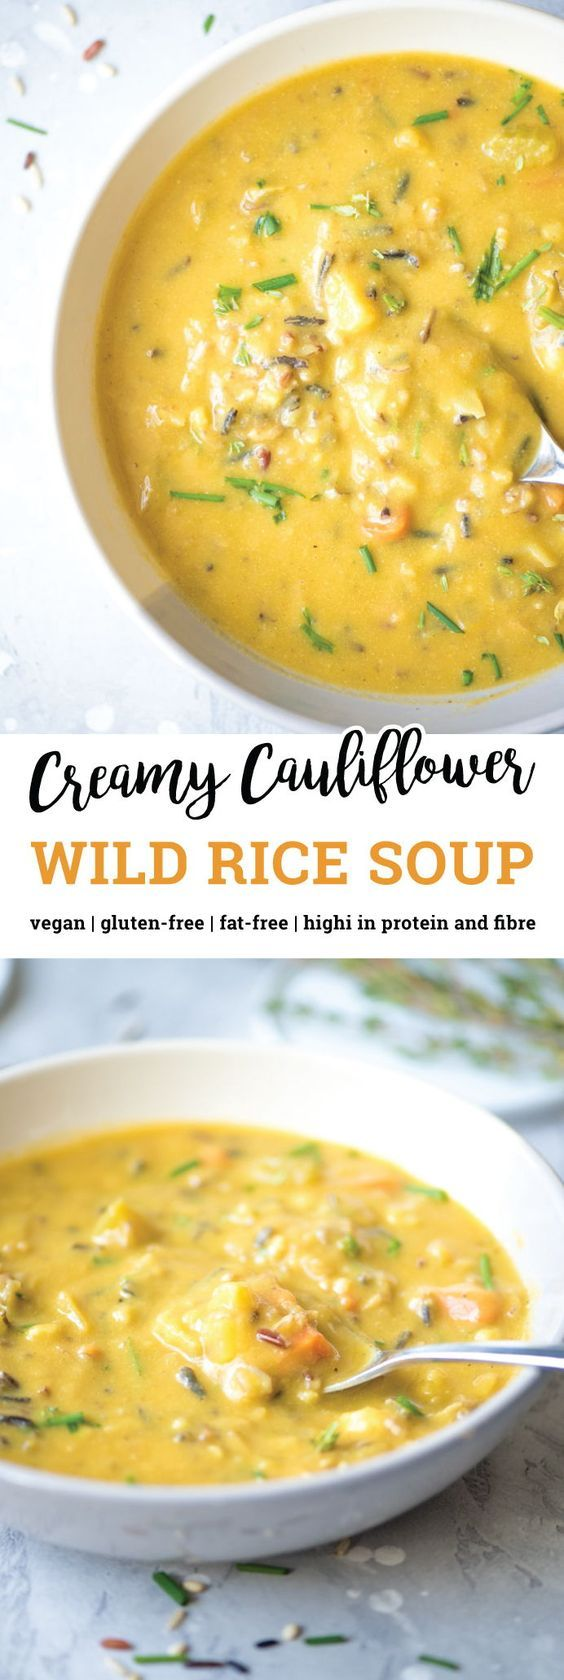 This healthy, creamy cauliflower wild rice soup is made with high-fibre cauliflower and carrots and it contains nutritional yeast for a cheesy twist on traditional wild rice soup. It's vegan, virtually fat-free, high in protein, gluten-free, easy to make, highly nutritious and very filling.